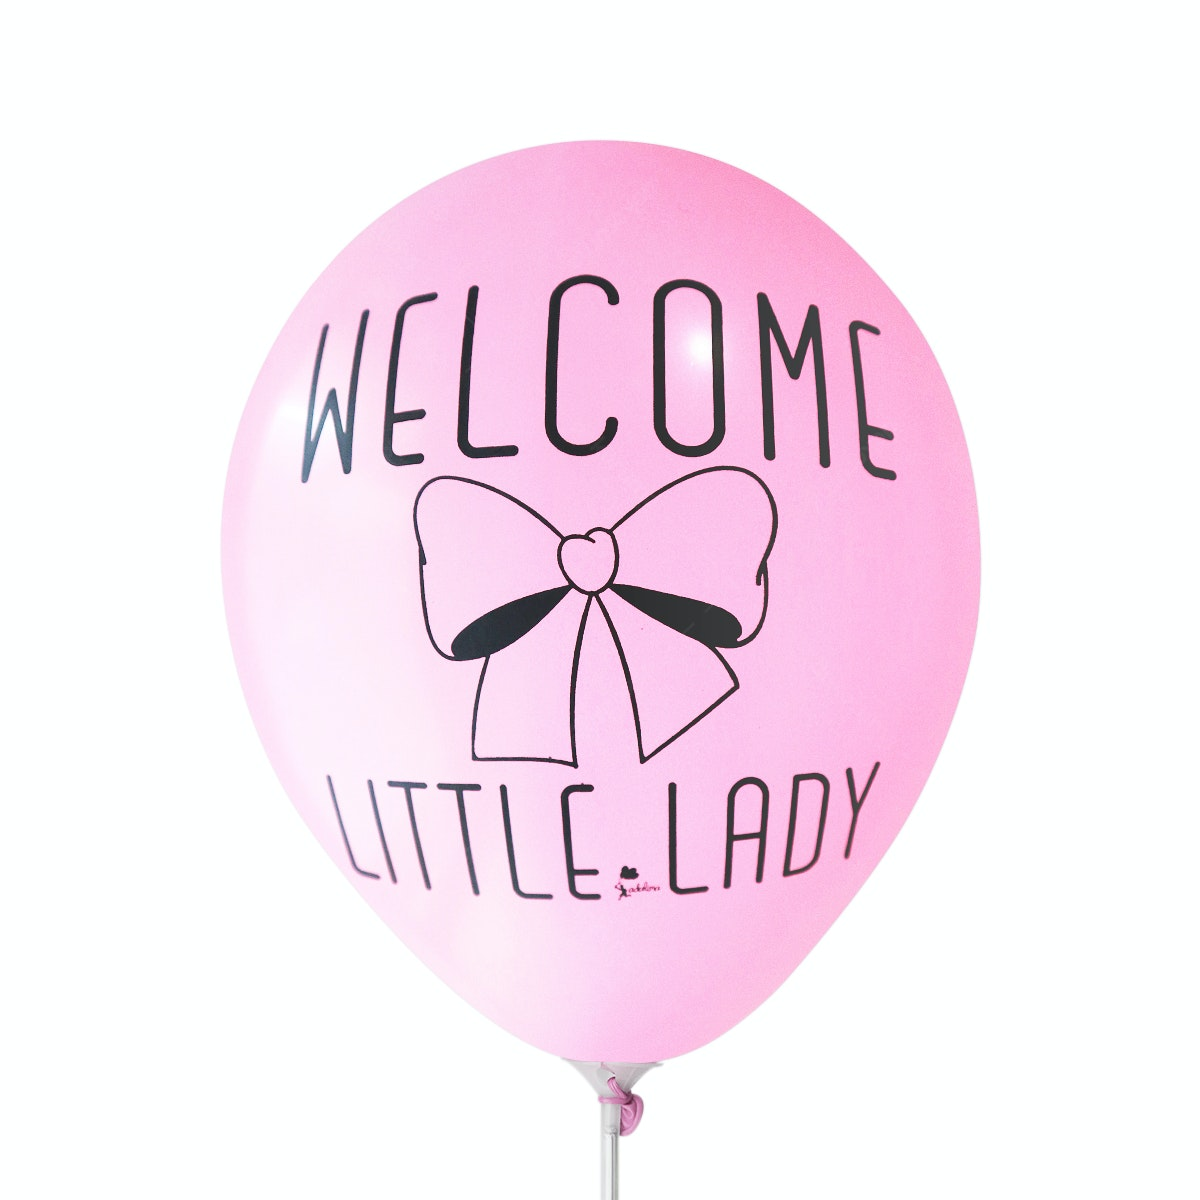 Adalima Balloon Balon Latex Welcome Little Lady Hot Pink QQ